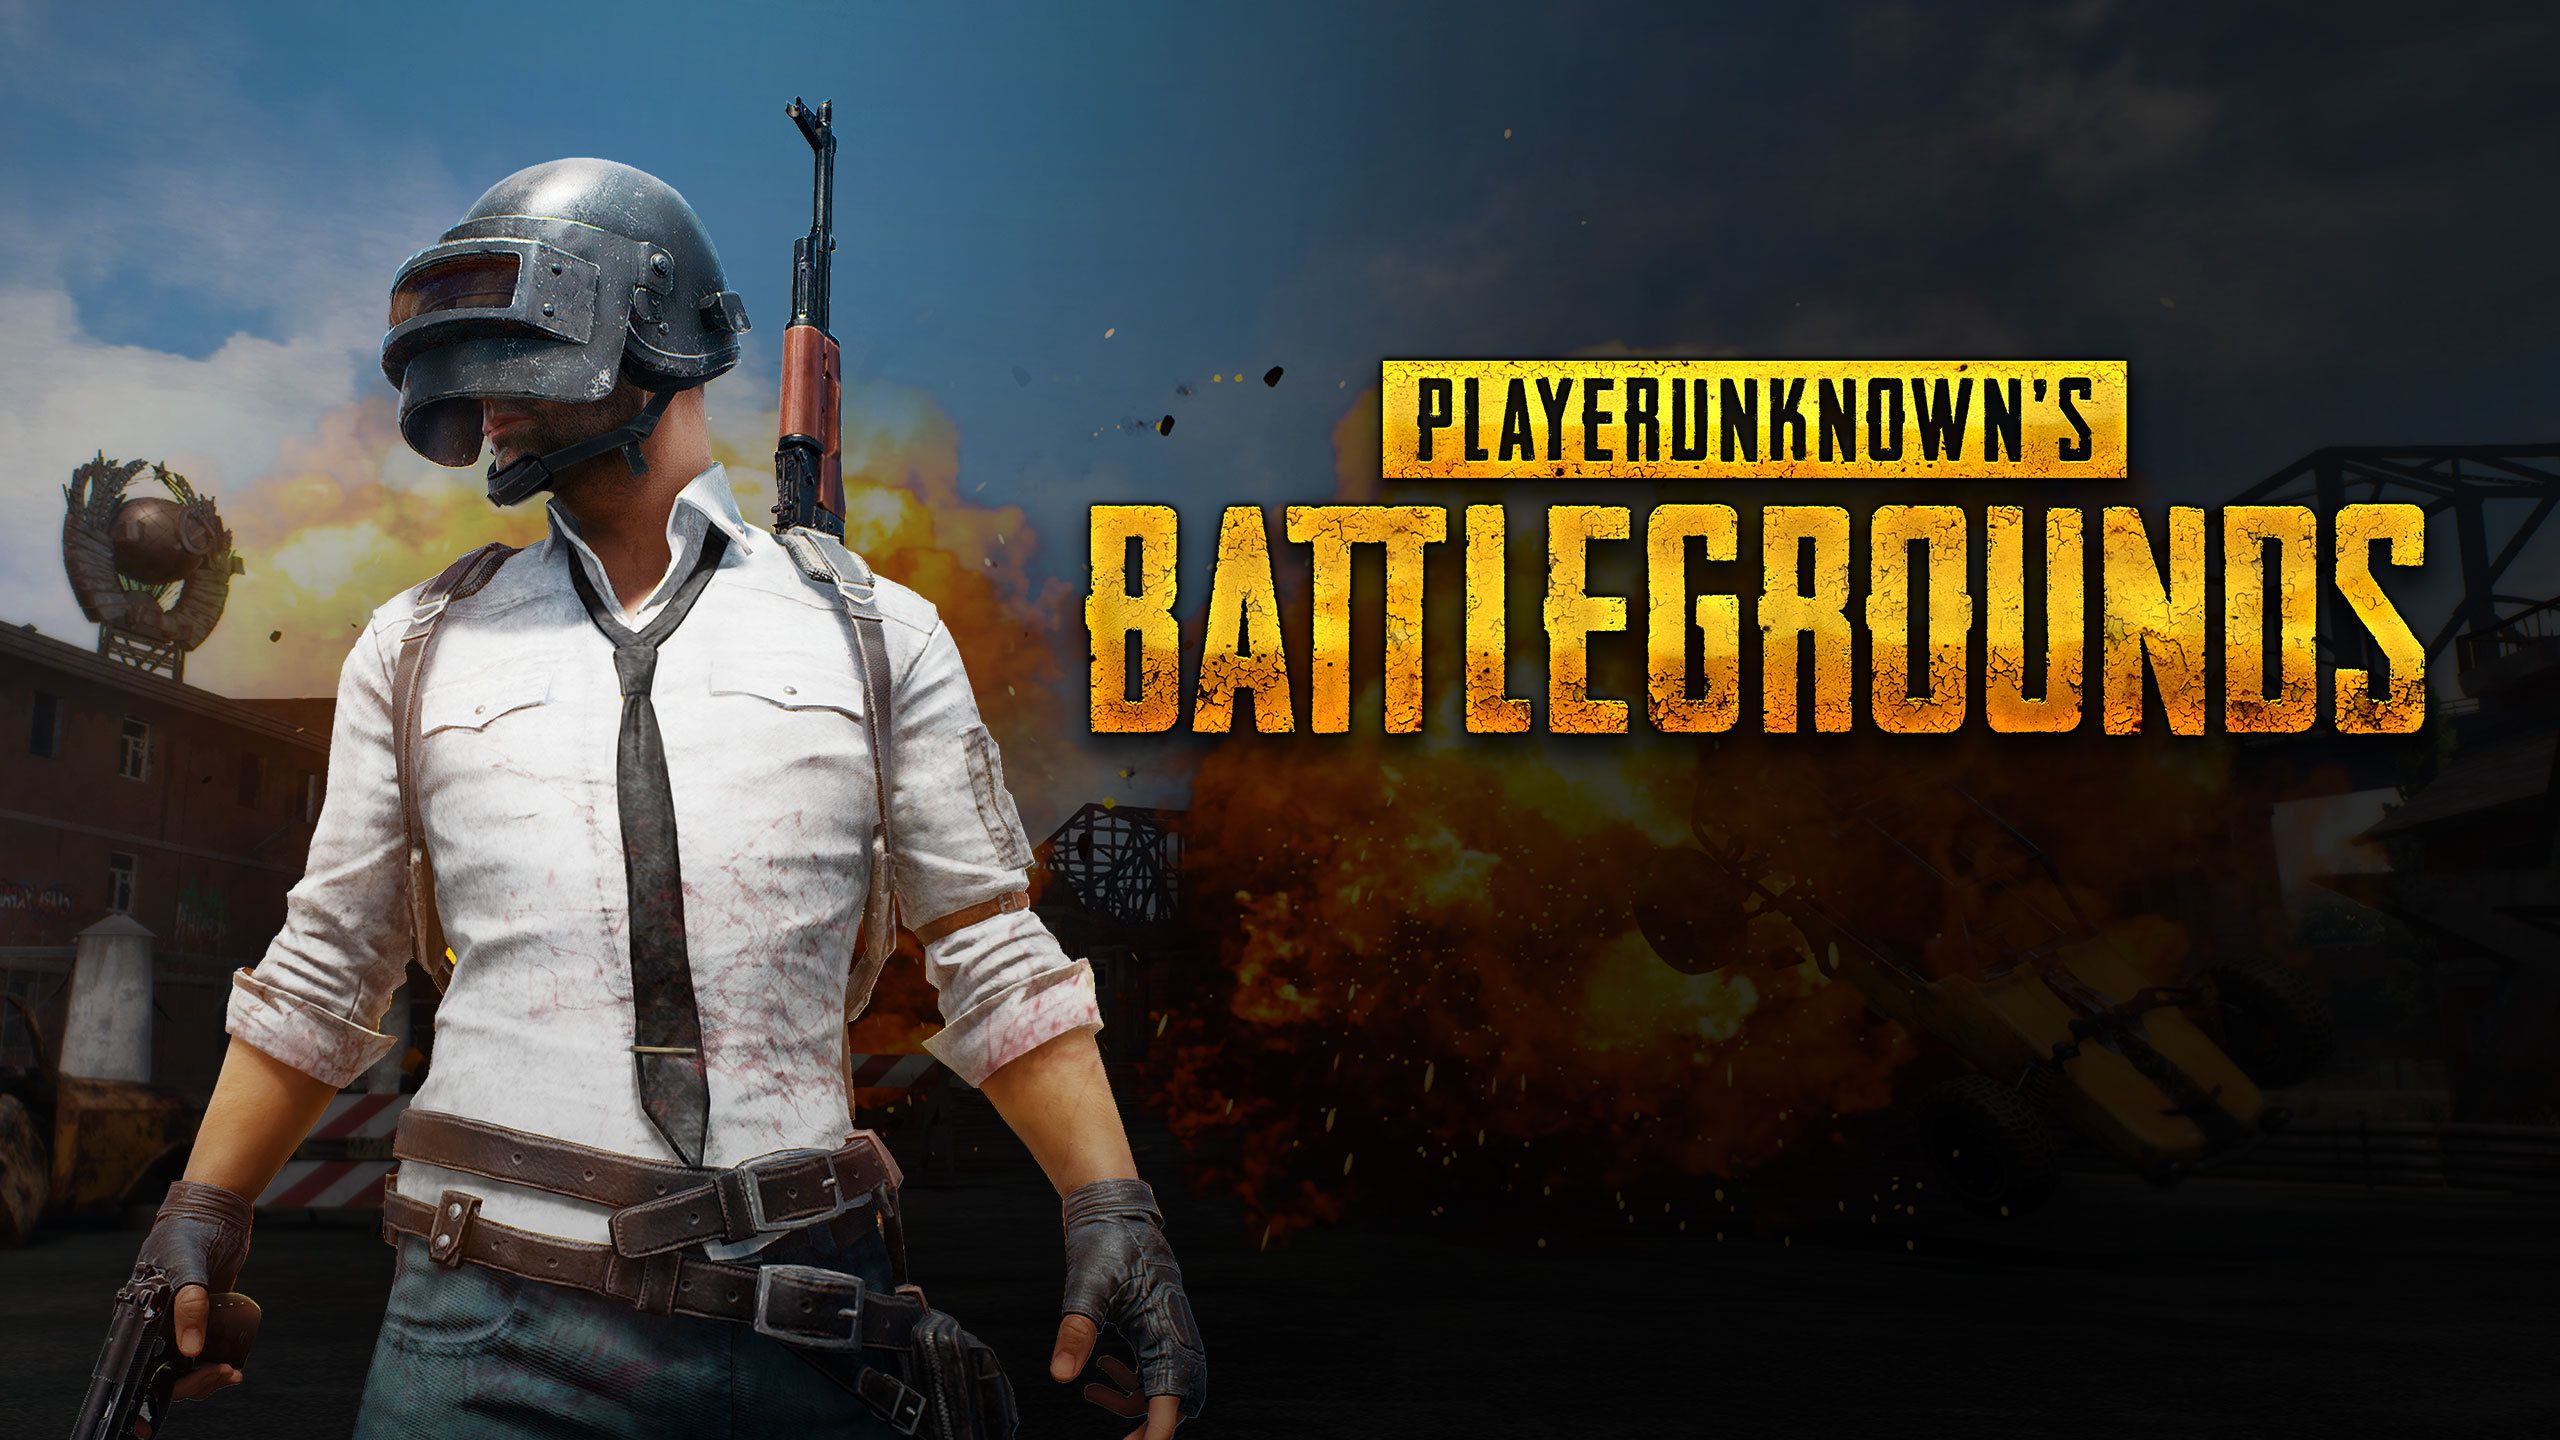 Pubg Wallpapers Hd 4k: PlayerUnknown's Battlegrounds: PUBG Wallpapers And Photos